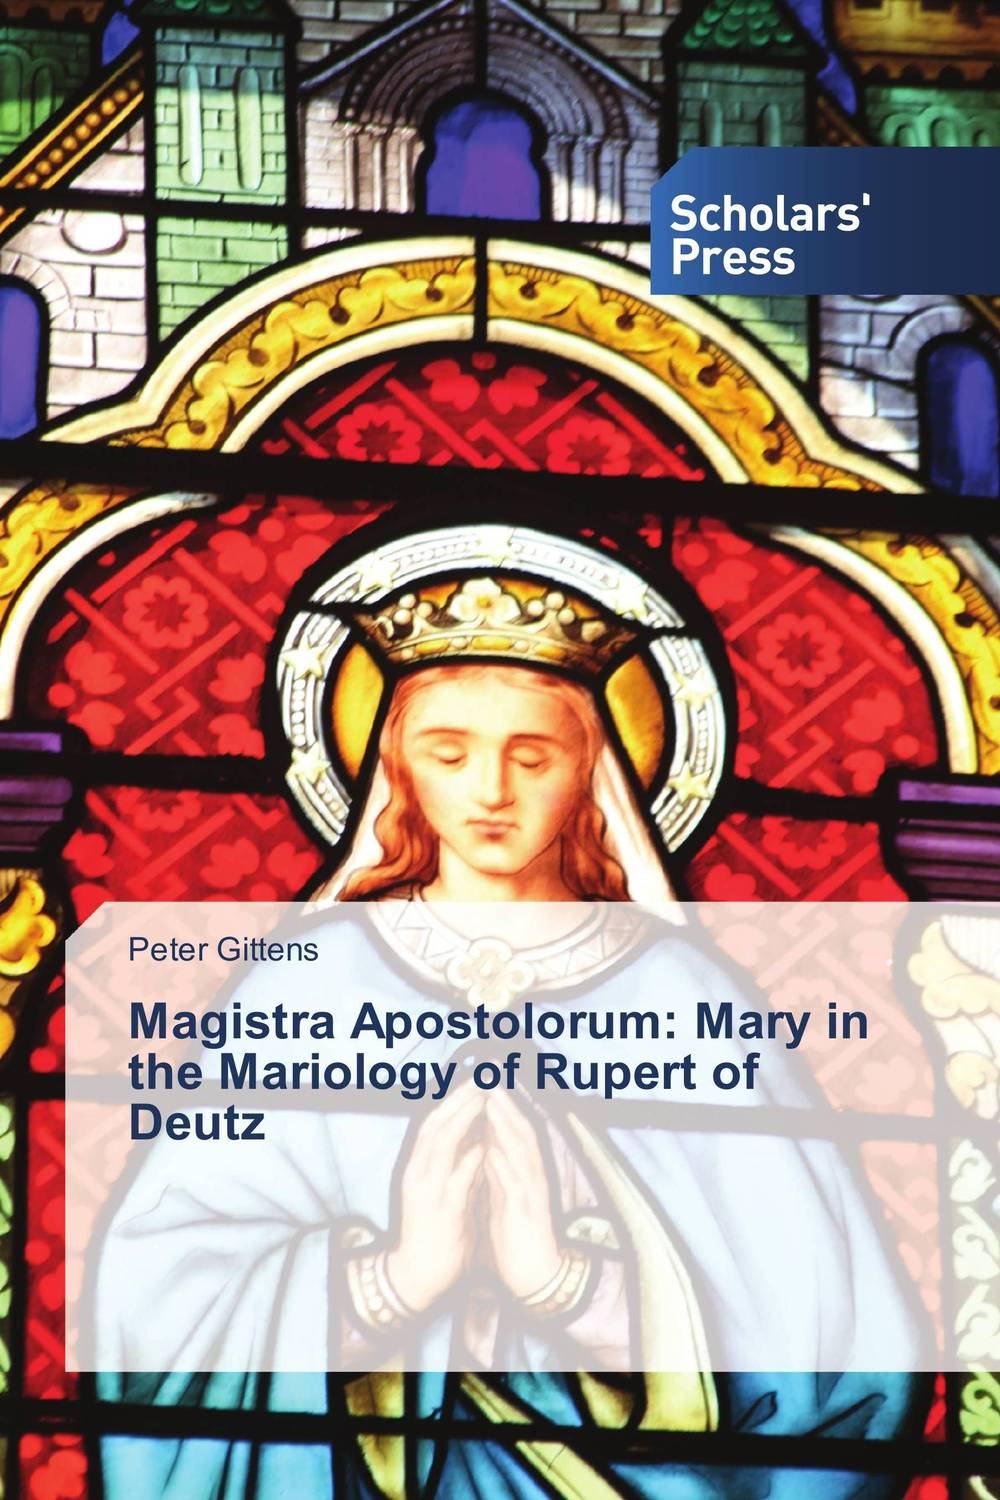 Magistra Apostolorum: Mary in the Mariology of Rupert of Deutz tim vicary mary queen of scots